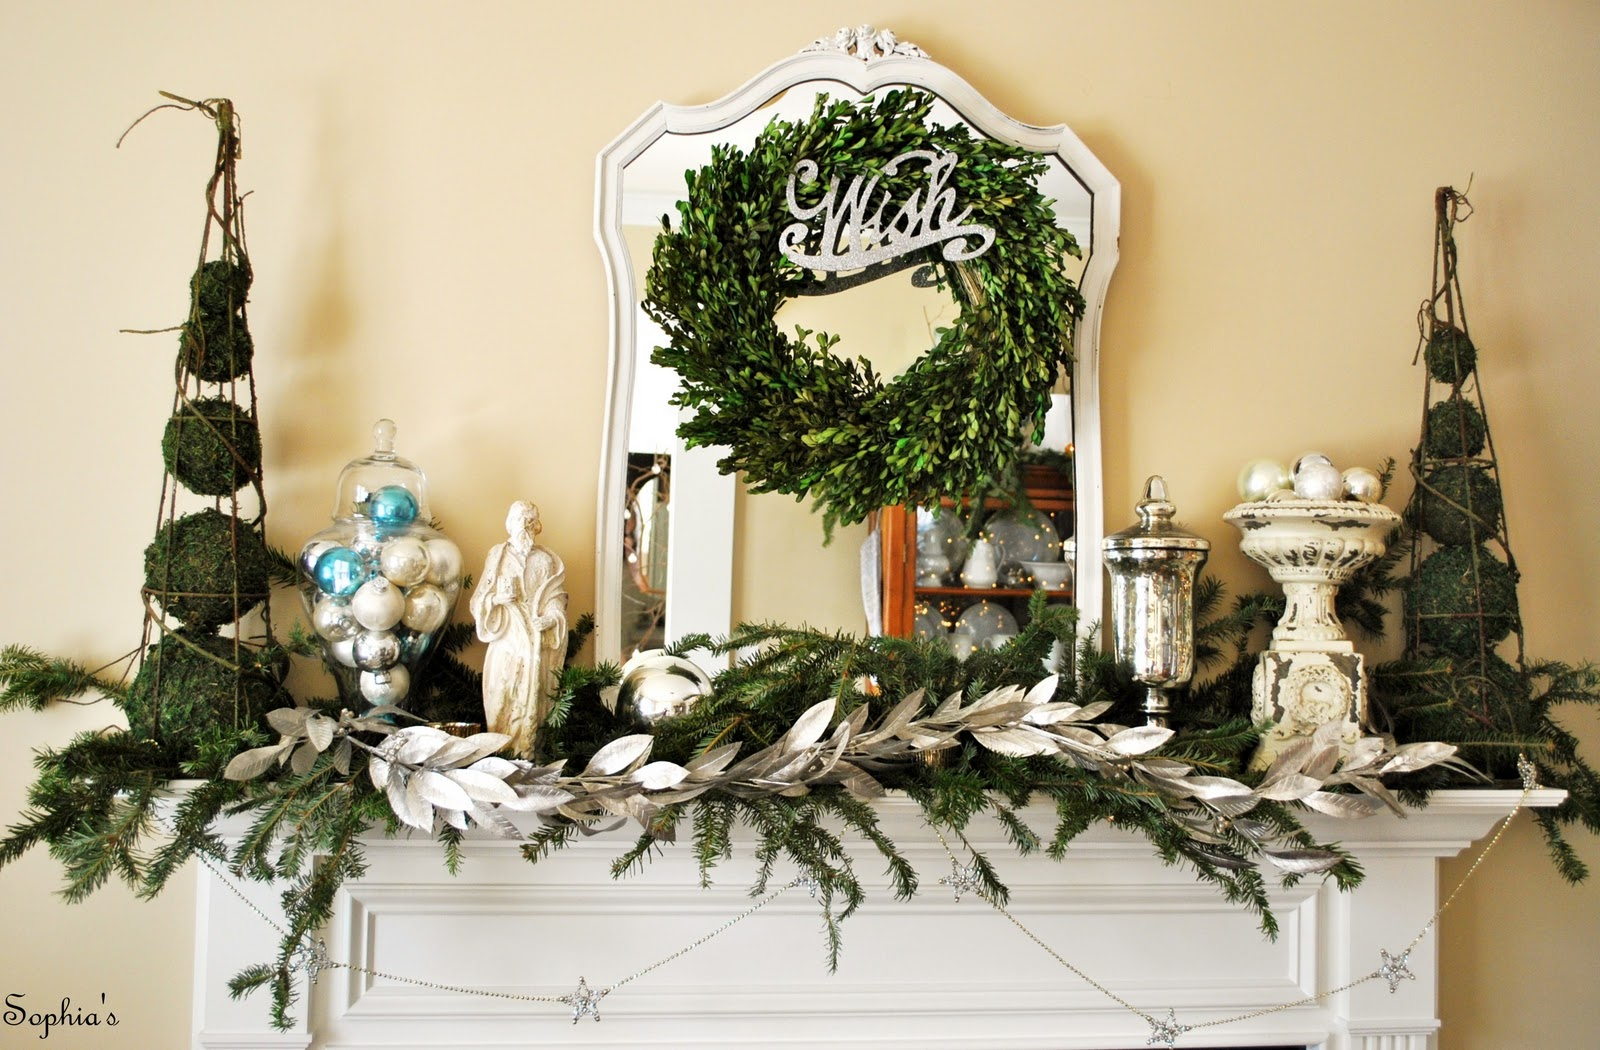 Sophia 39 s a christmas mantel - Modern christmas mantel ideas ...